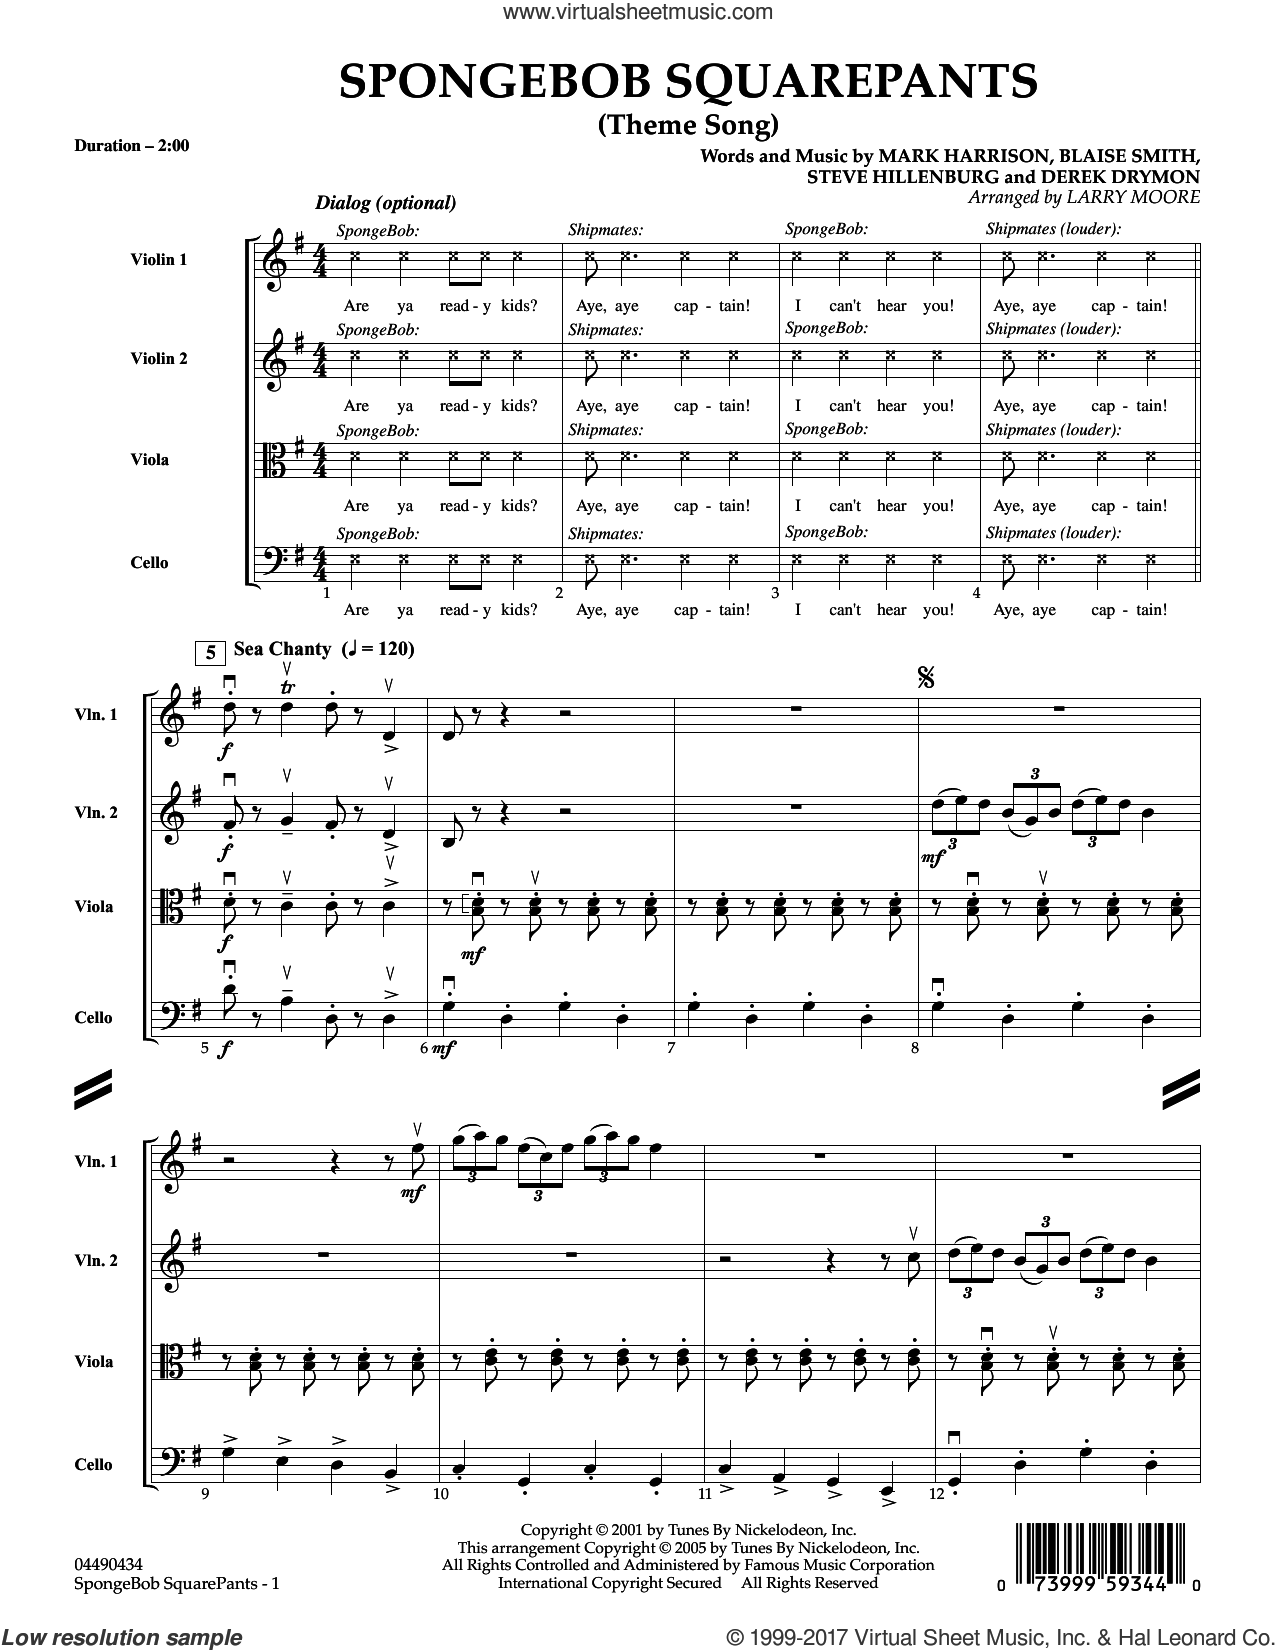 Moore - SpongeBob SquarePants (Theme Song) sheet music (complete  collection) for orchestra (Strings)